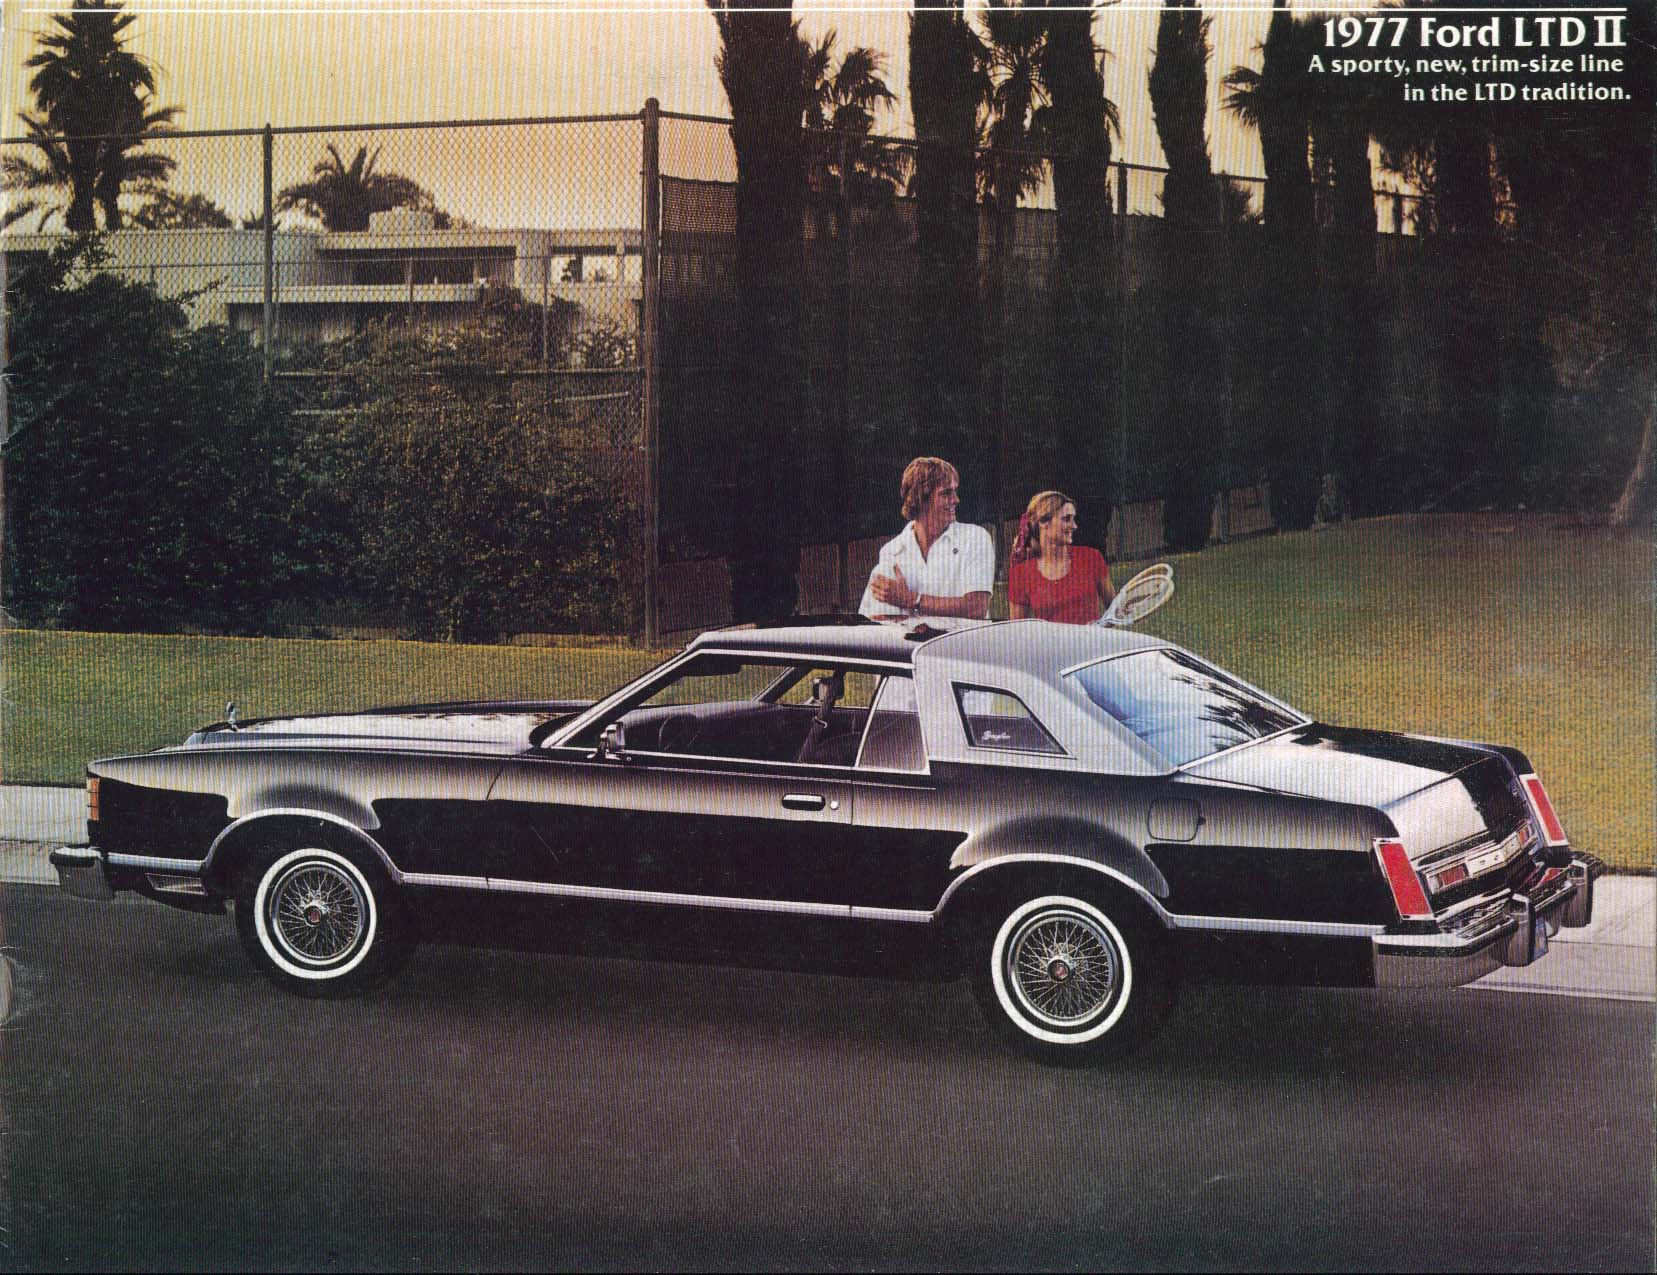 Image for 1977 Ford LTD II sales brochure sporty new trim-size line